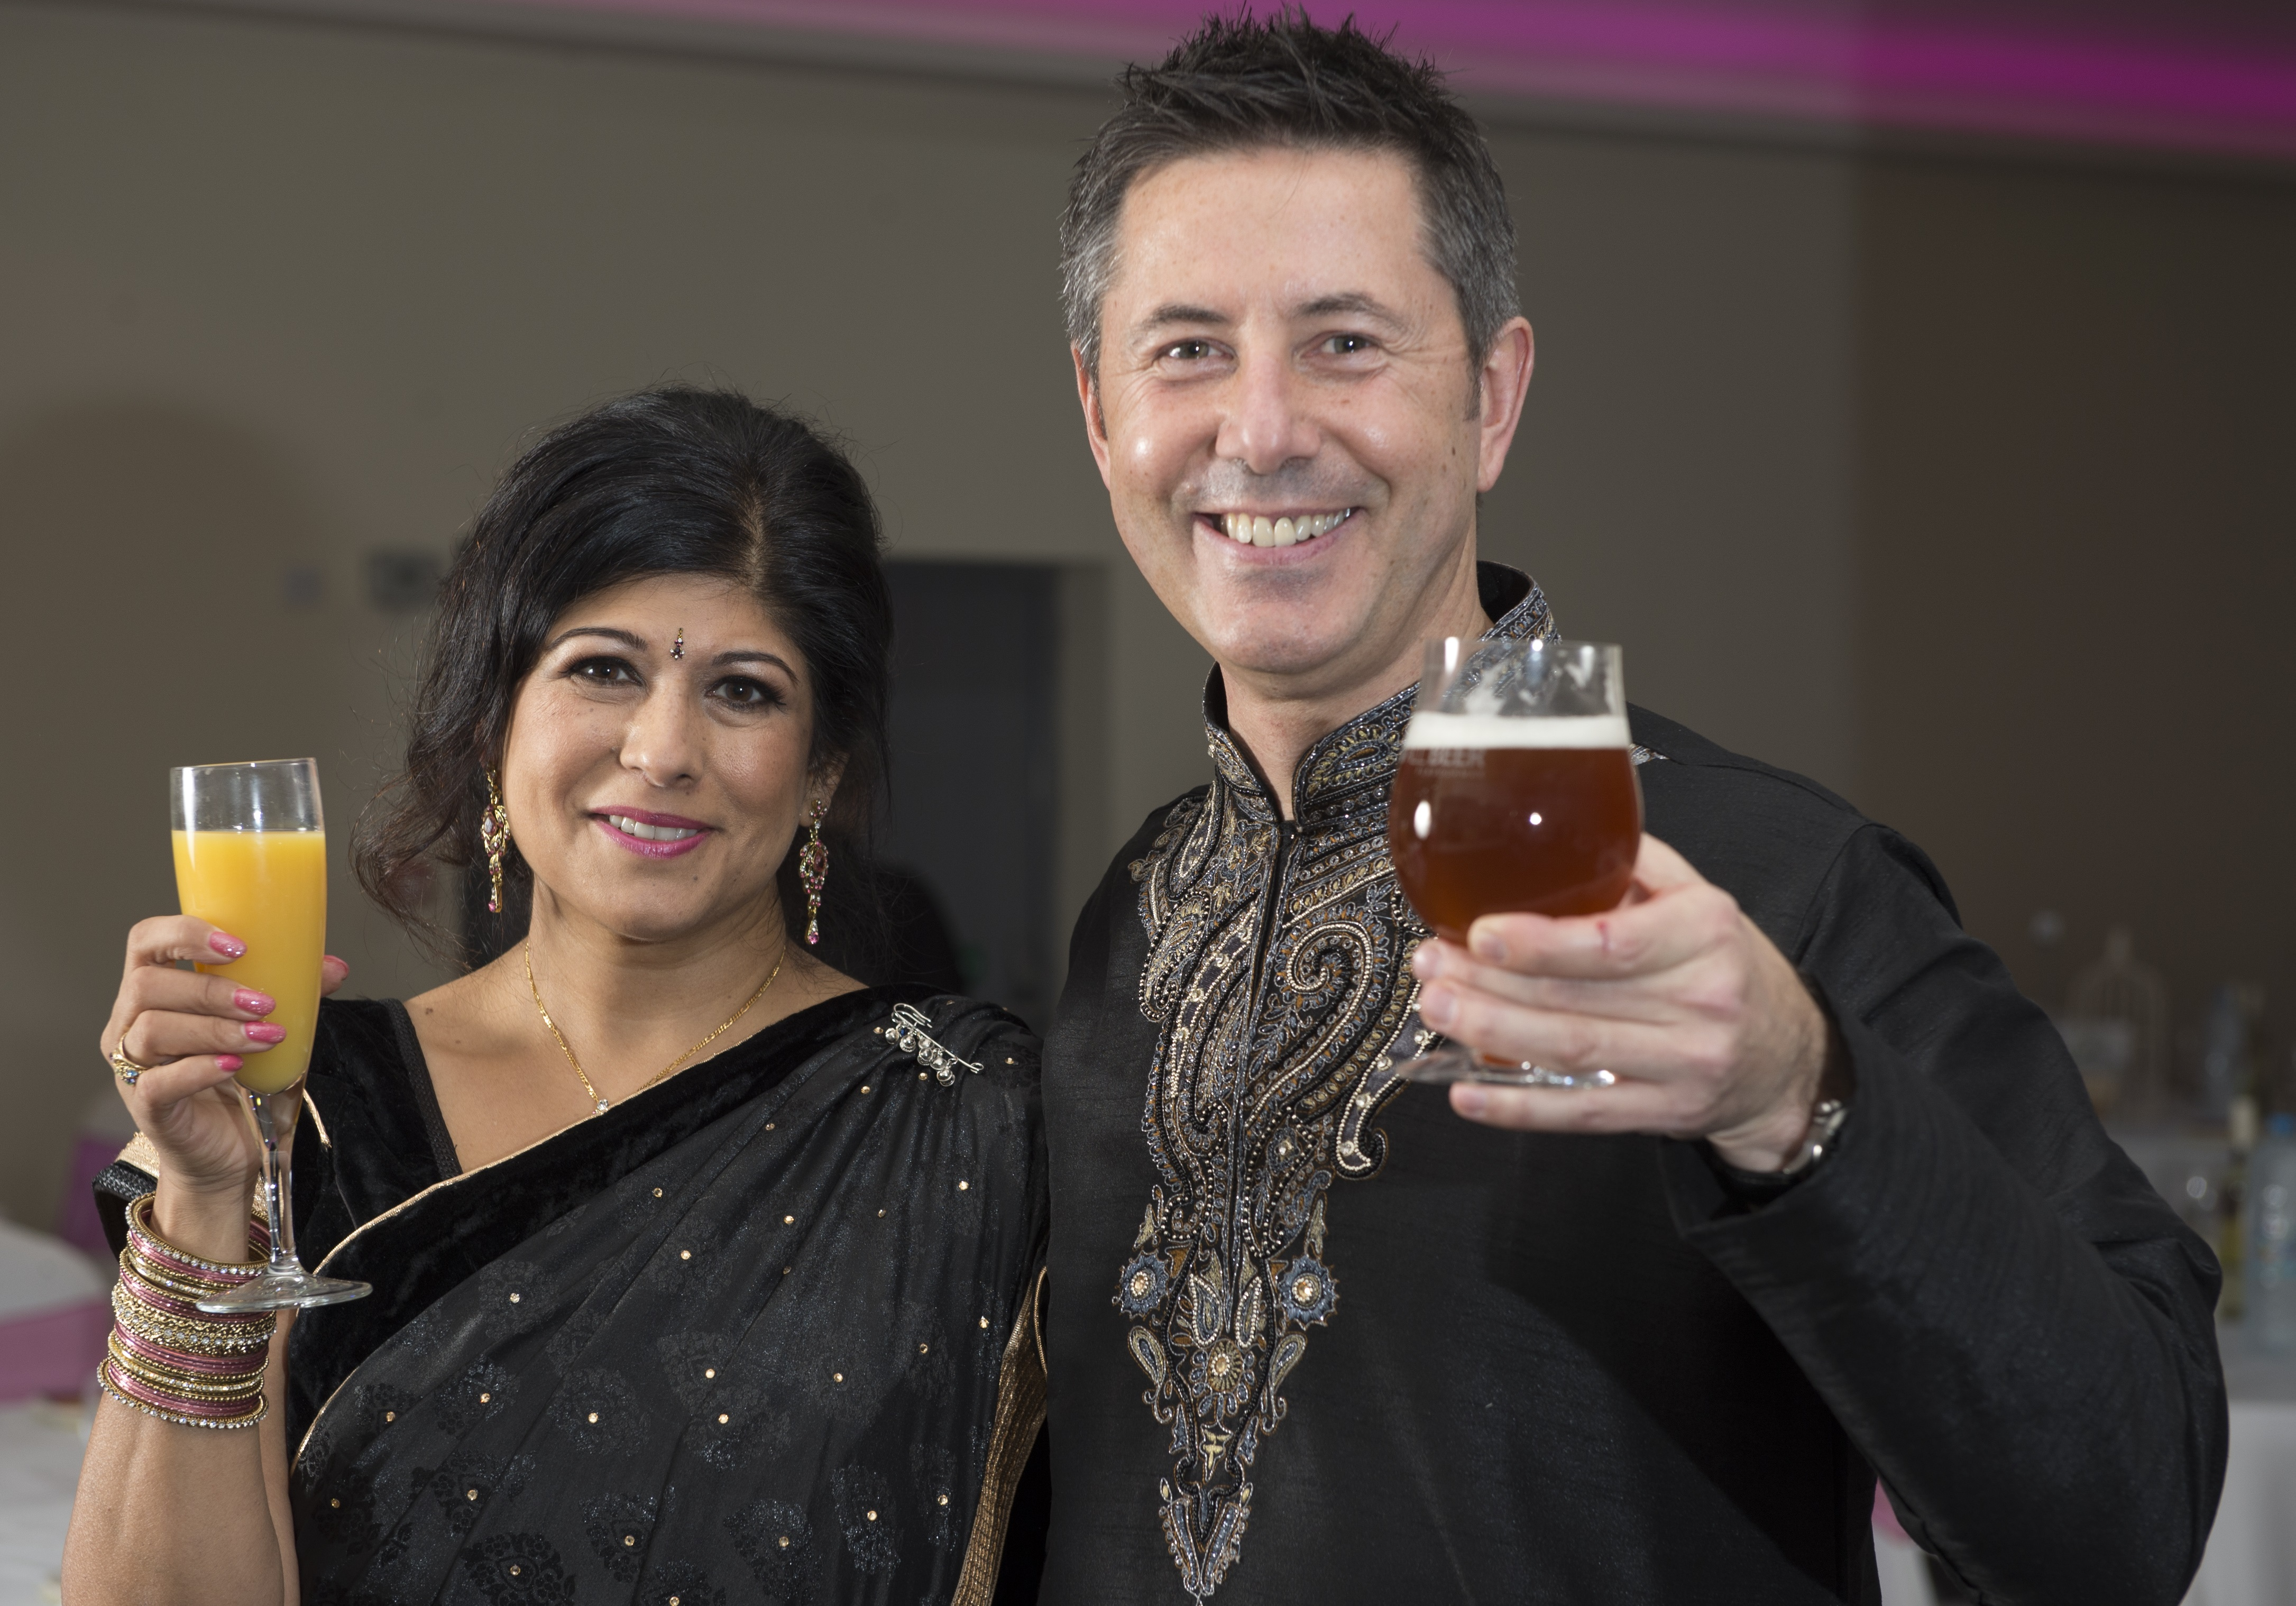 Bhayani Law Bollywood Ball held at Arooj, Attercliffe Road in Sheffield Saturday 7th November 2015 Jay Bhayani and Alex Barlow of All Beer